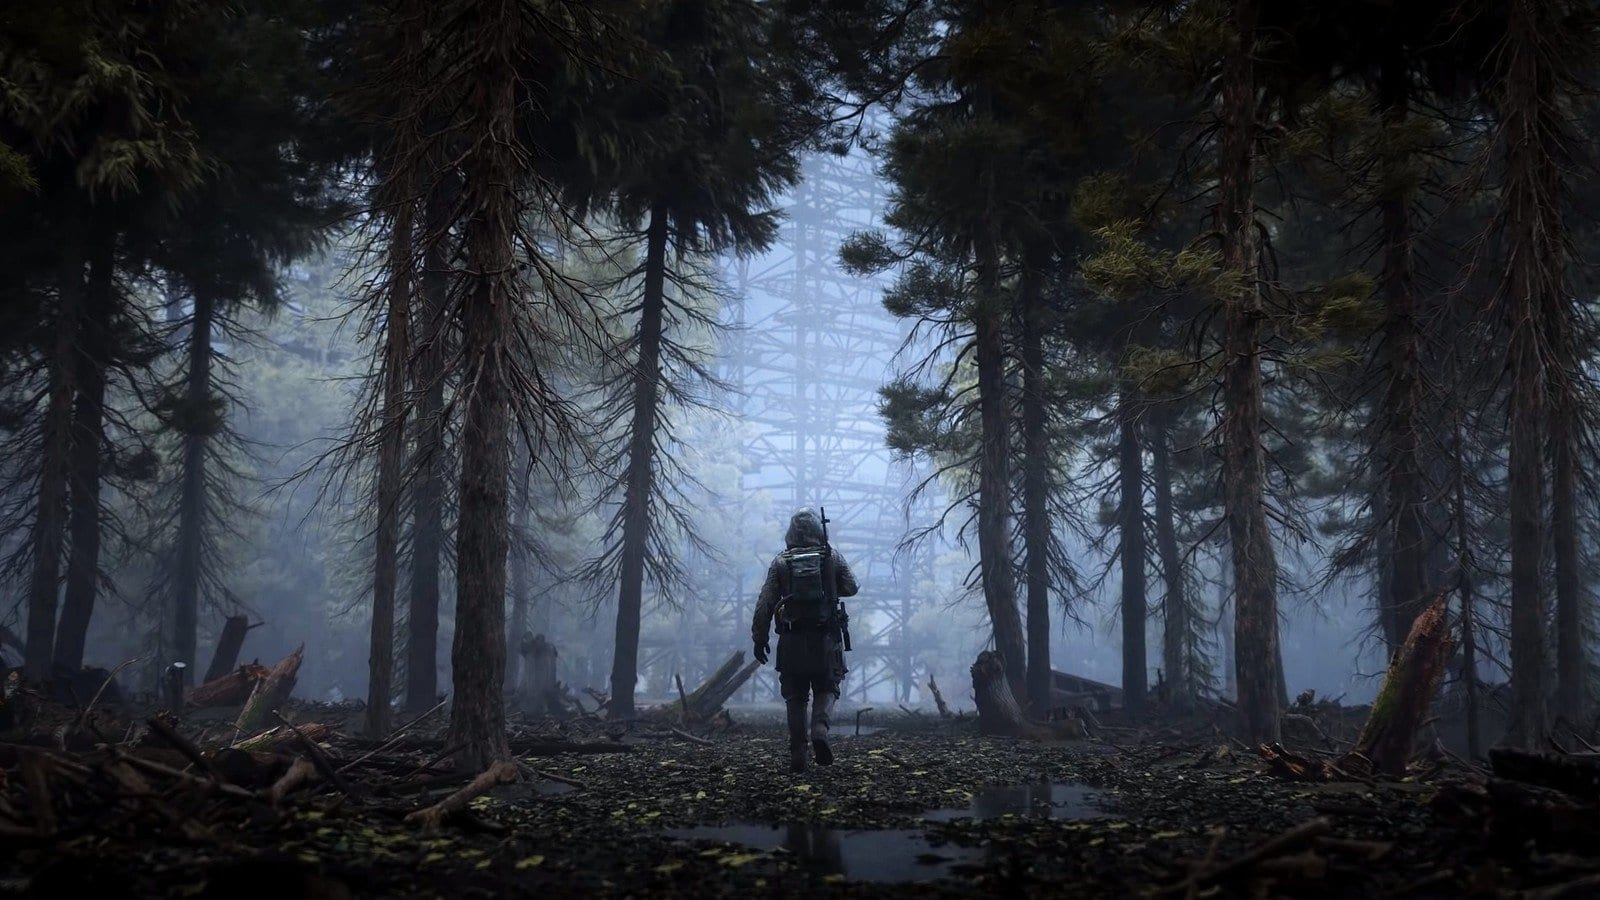 What to expect from Stalker 2?